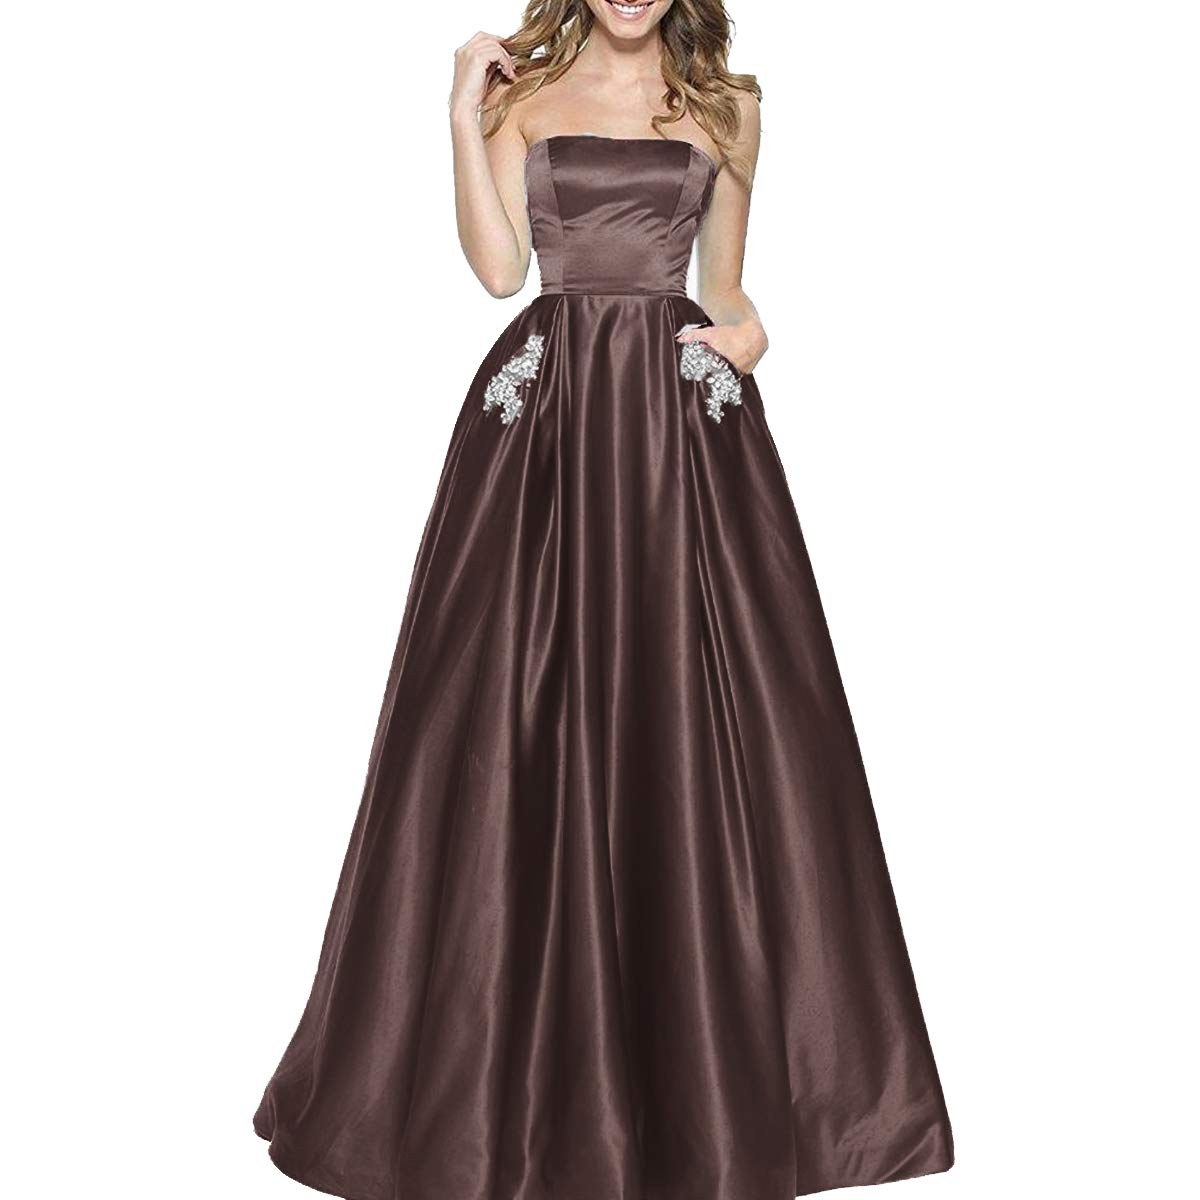 Coffee TTYbridal Women's ALine Strapless Beaded Prom Dresses Long Satin Homecoming Party Gown with Pockets